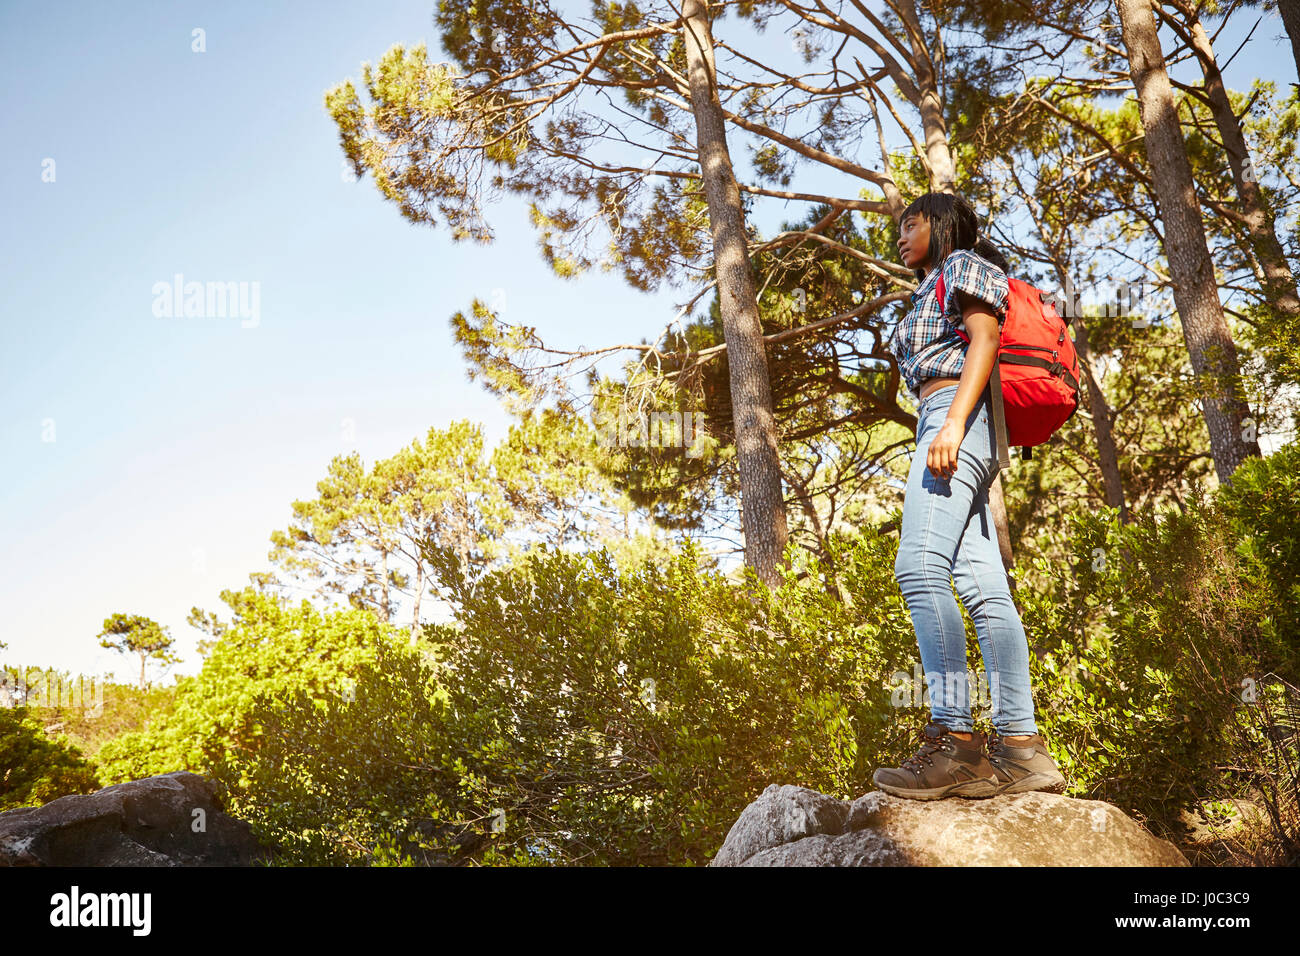 Young woman standing on rock, looking at view, Cape Town, South Africa - Stock Image